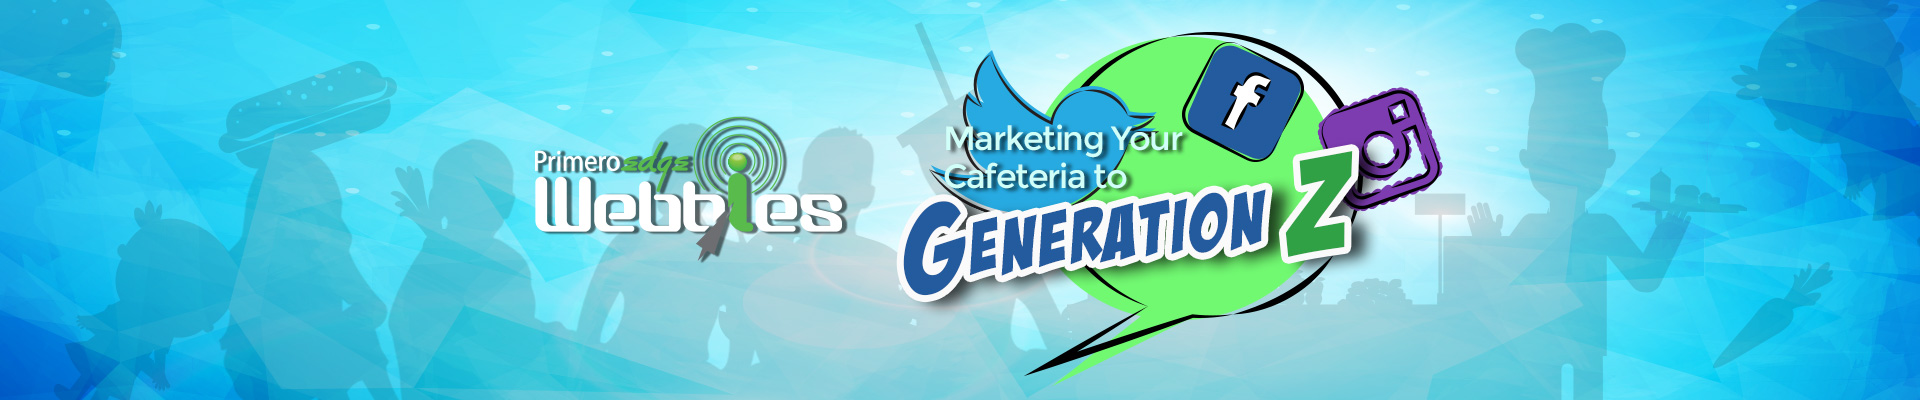 Webbies: Generation Z Header